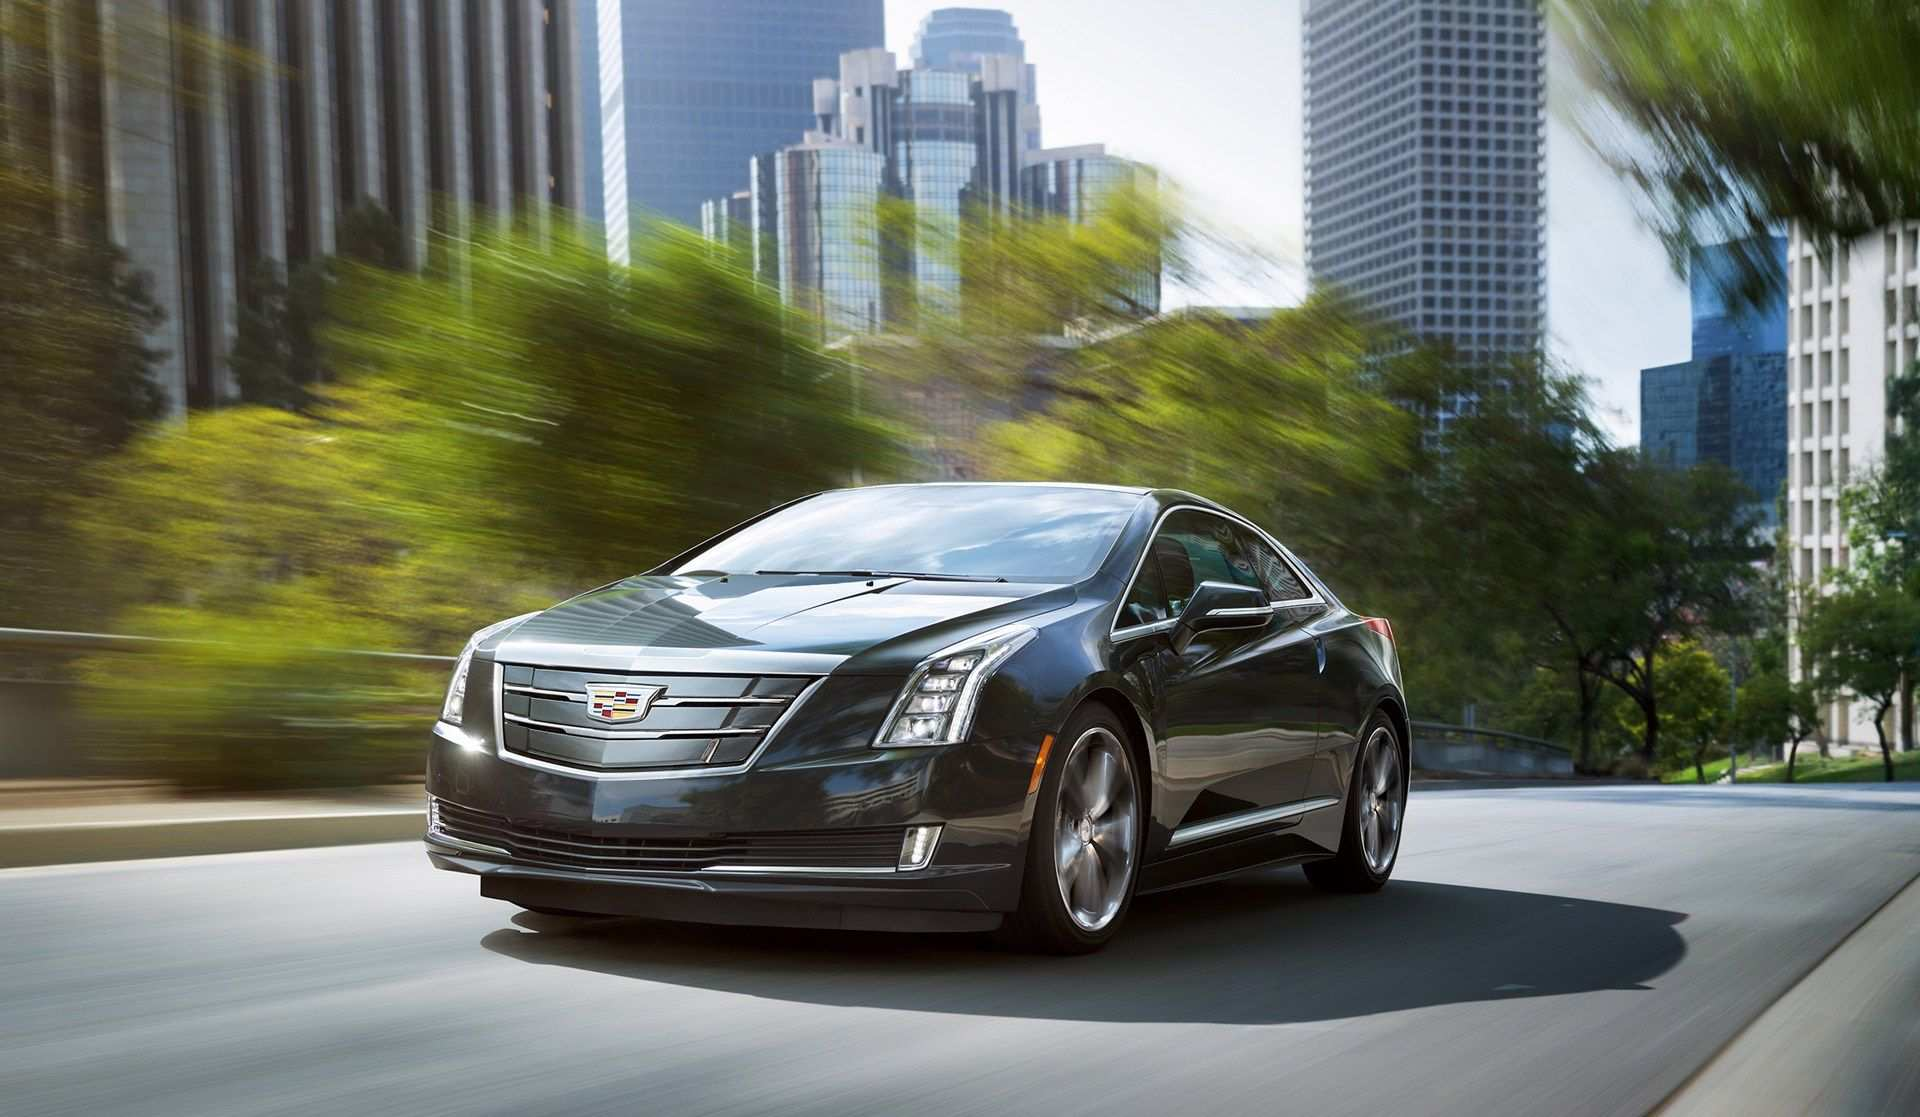 48 All New 2020 Cadillac ELR Price And Review